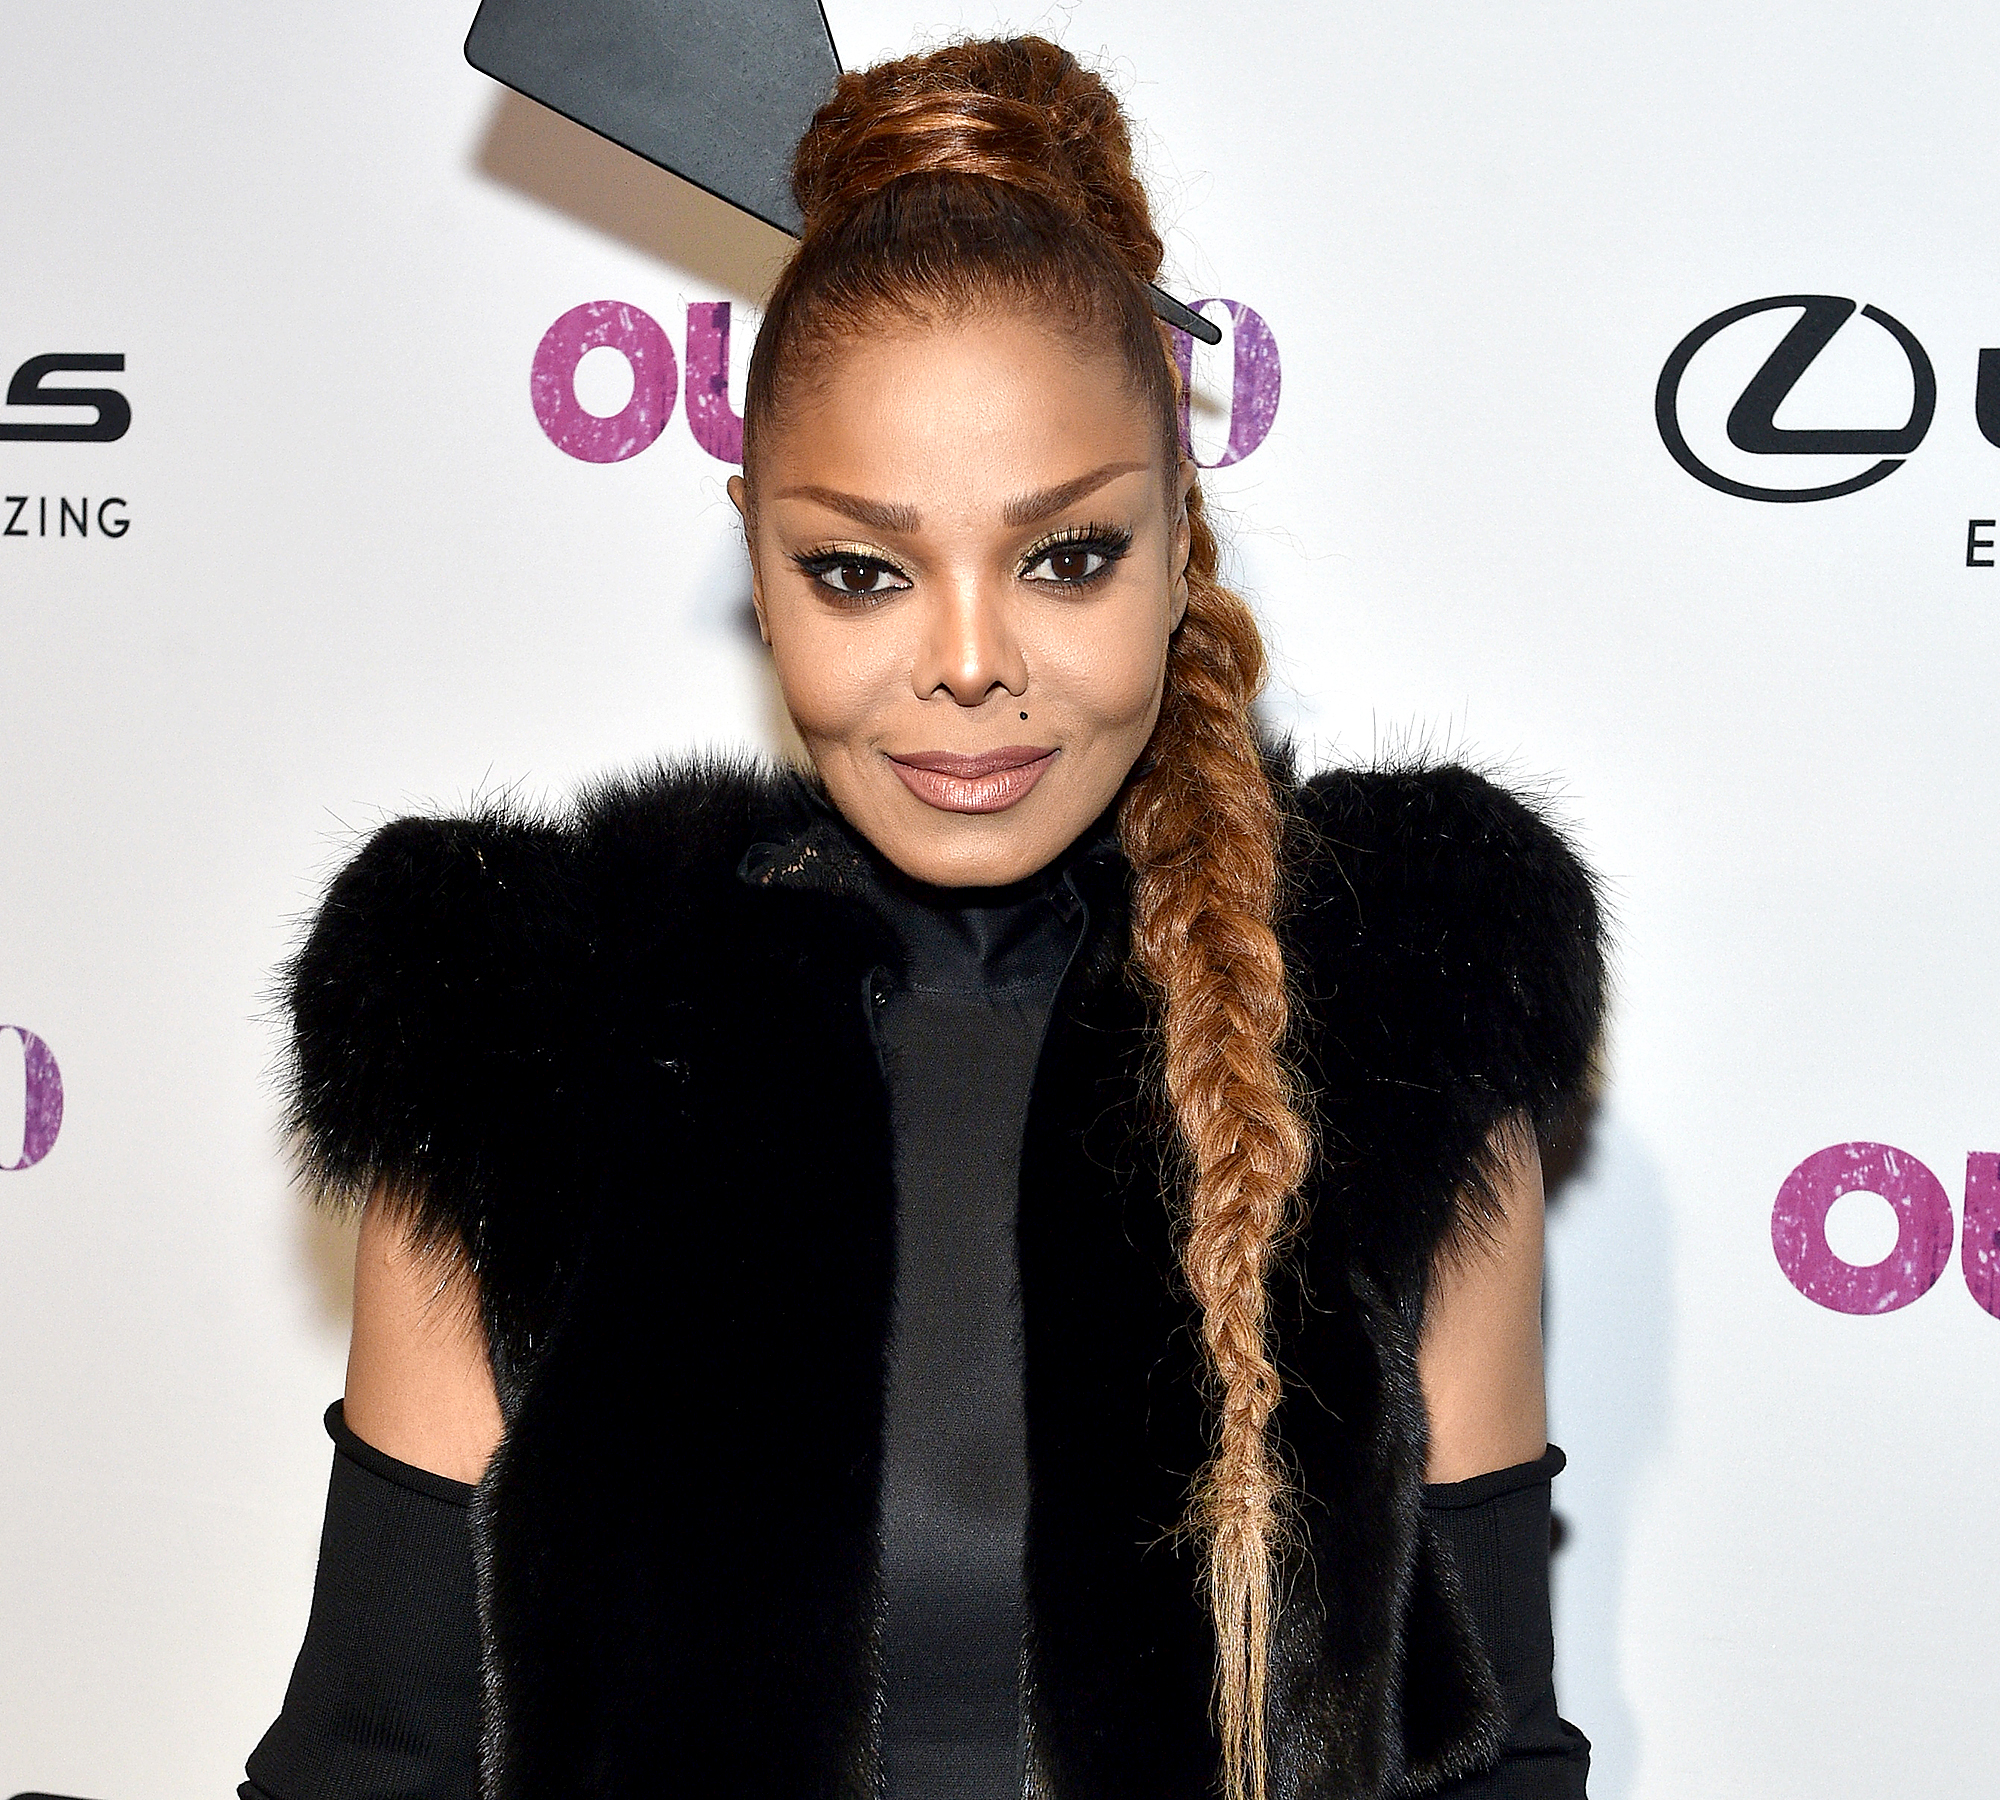 janet-jackson-pregnant - First-time mom at 50! Jackson announced that she was expecting in April 2016, and her son, Eissa, arrived in January 2017 .